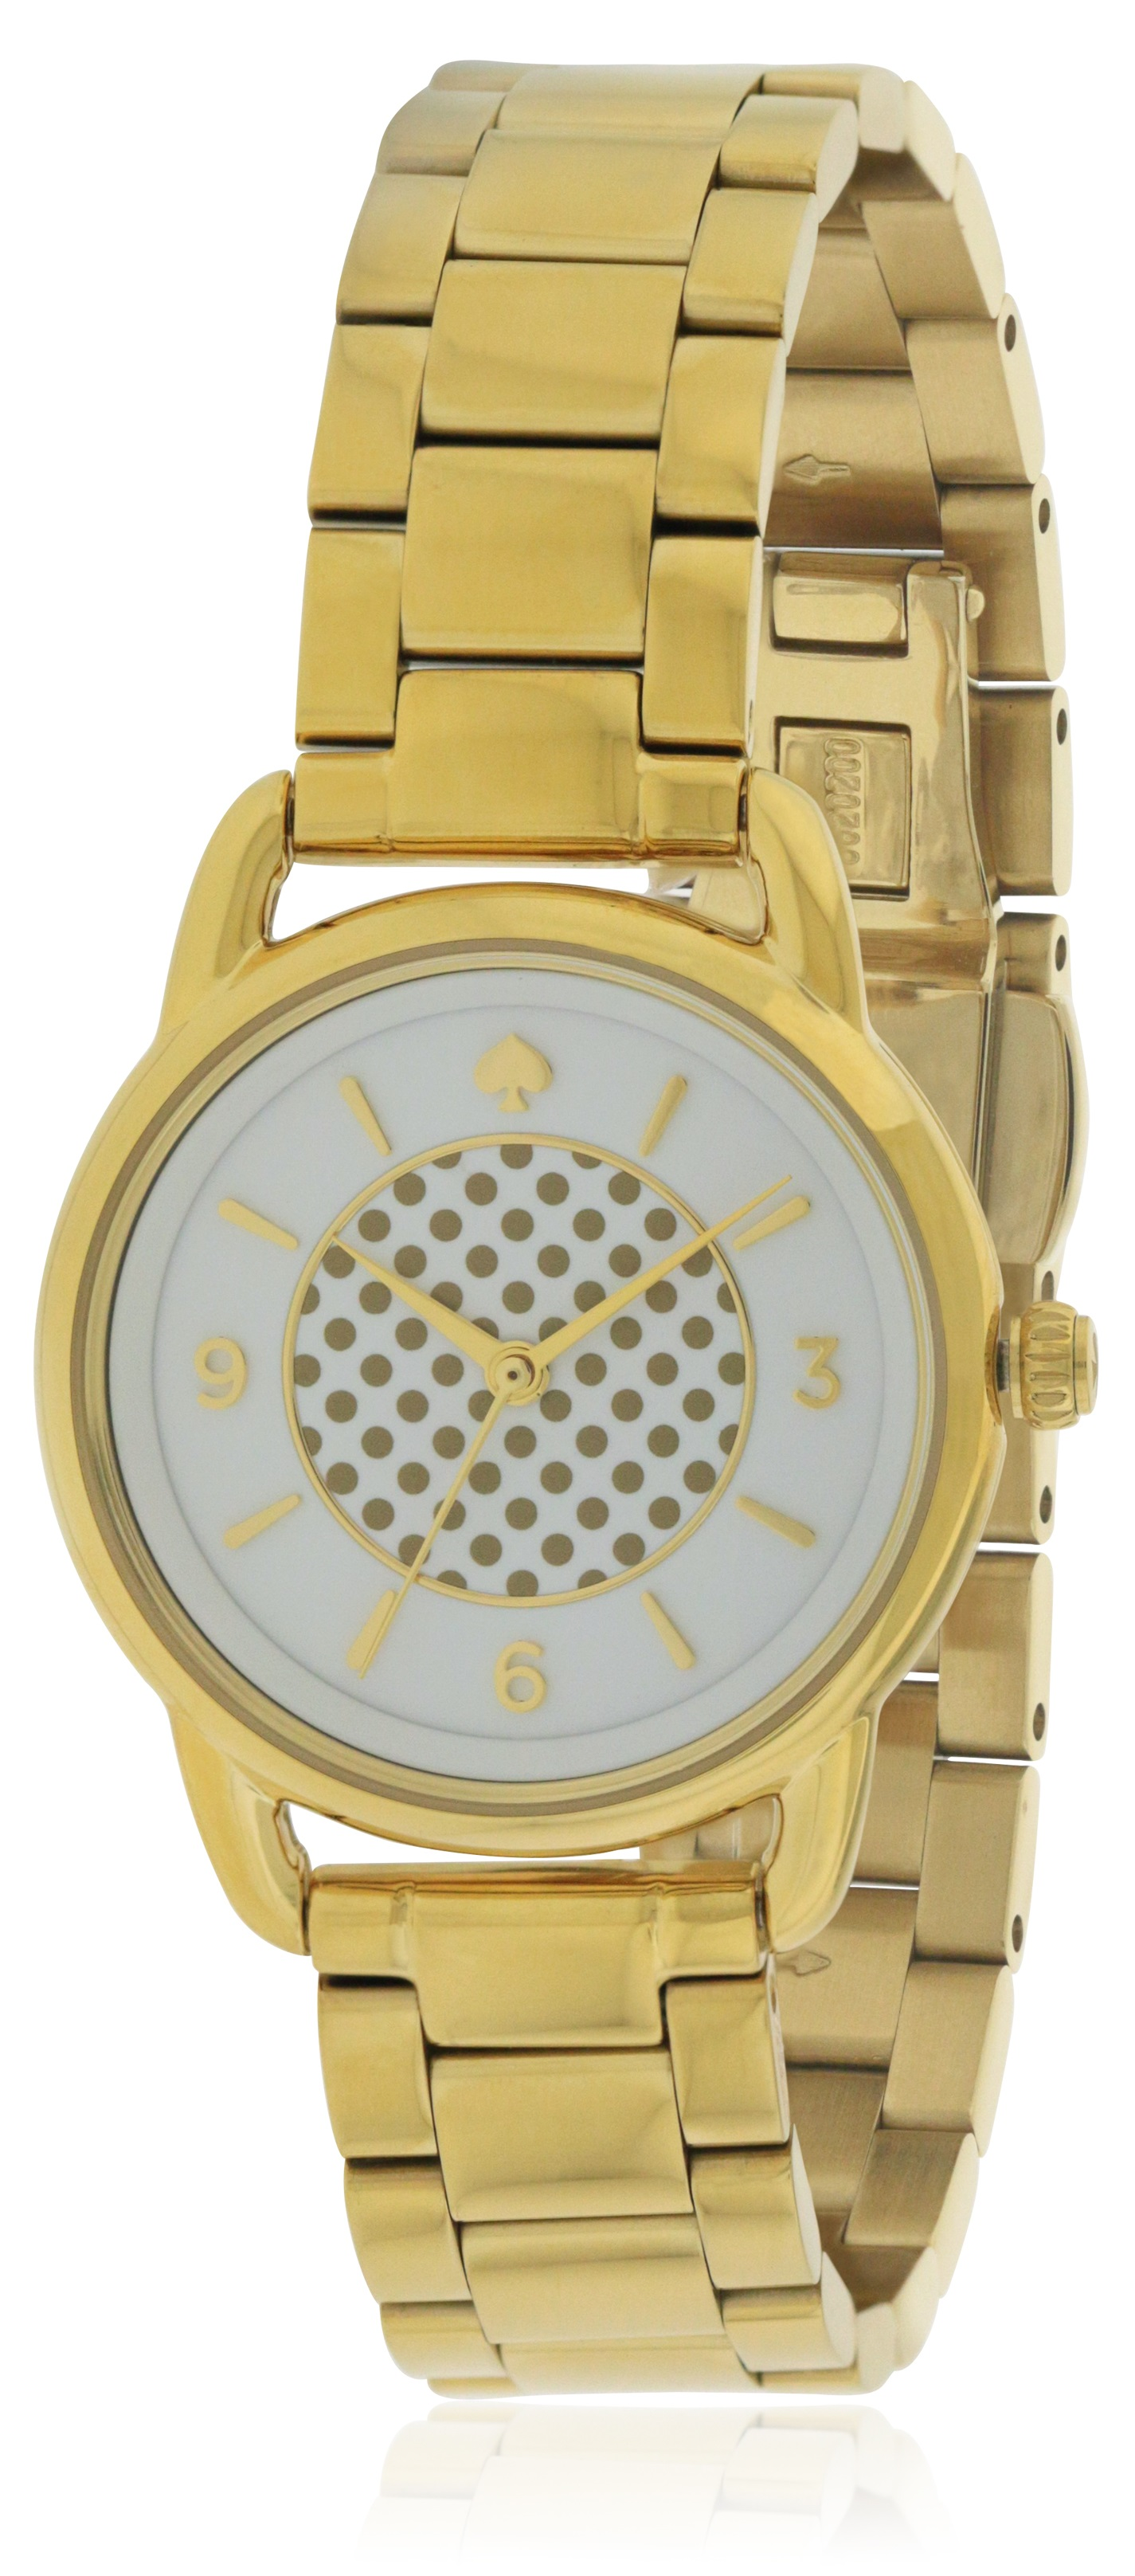 Kate Spade Boathouse Gold-Tone Ladies Watch KSW1166